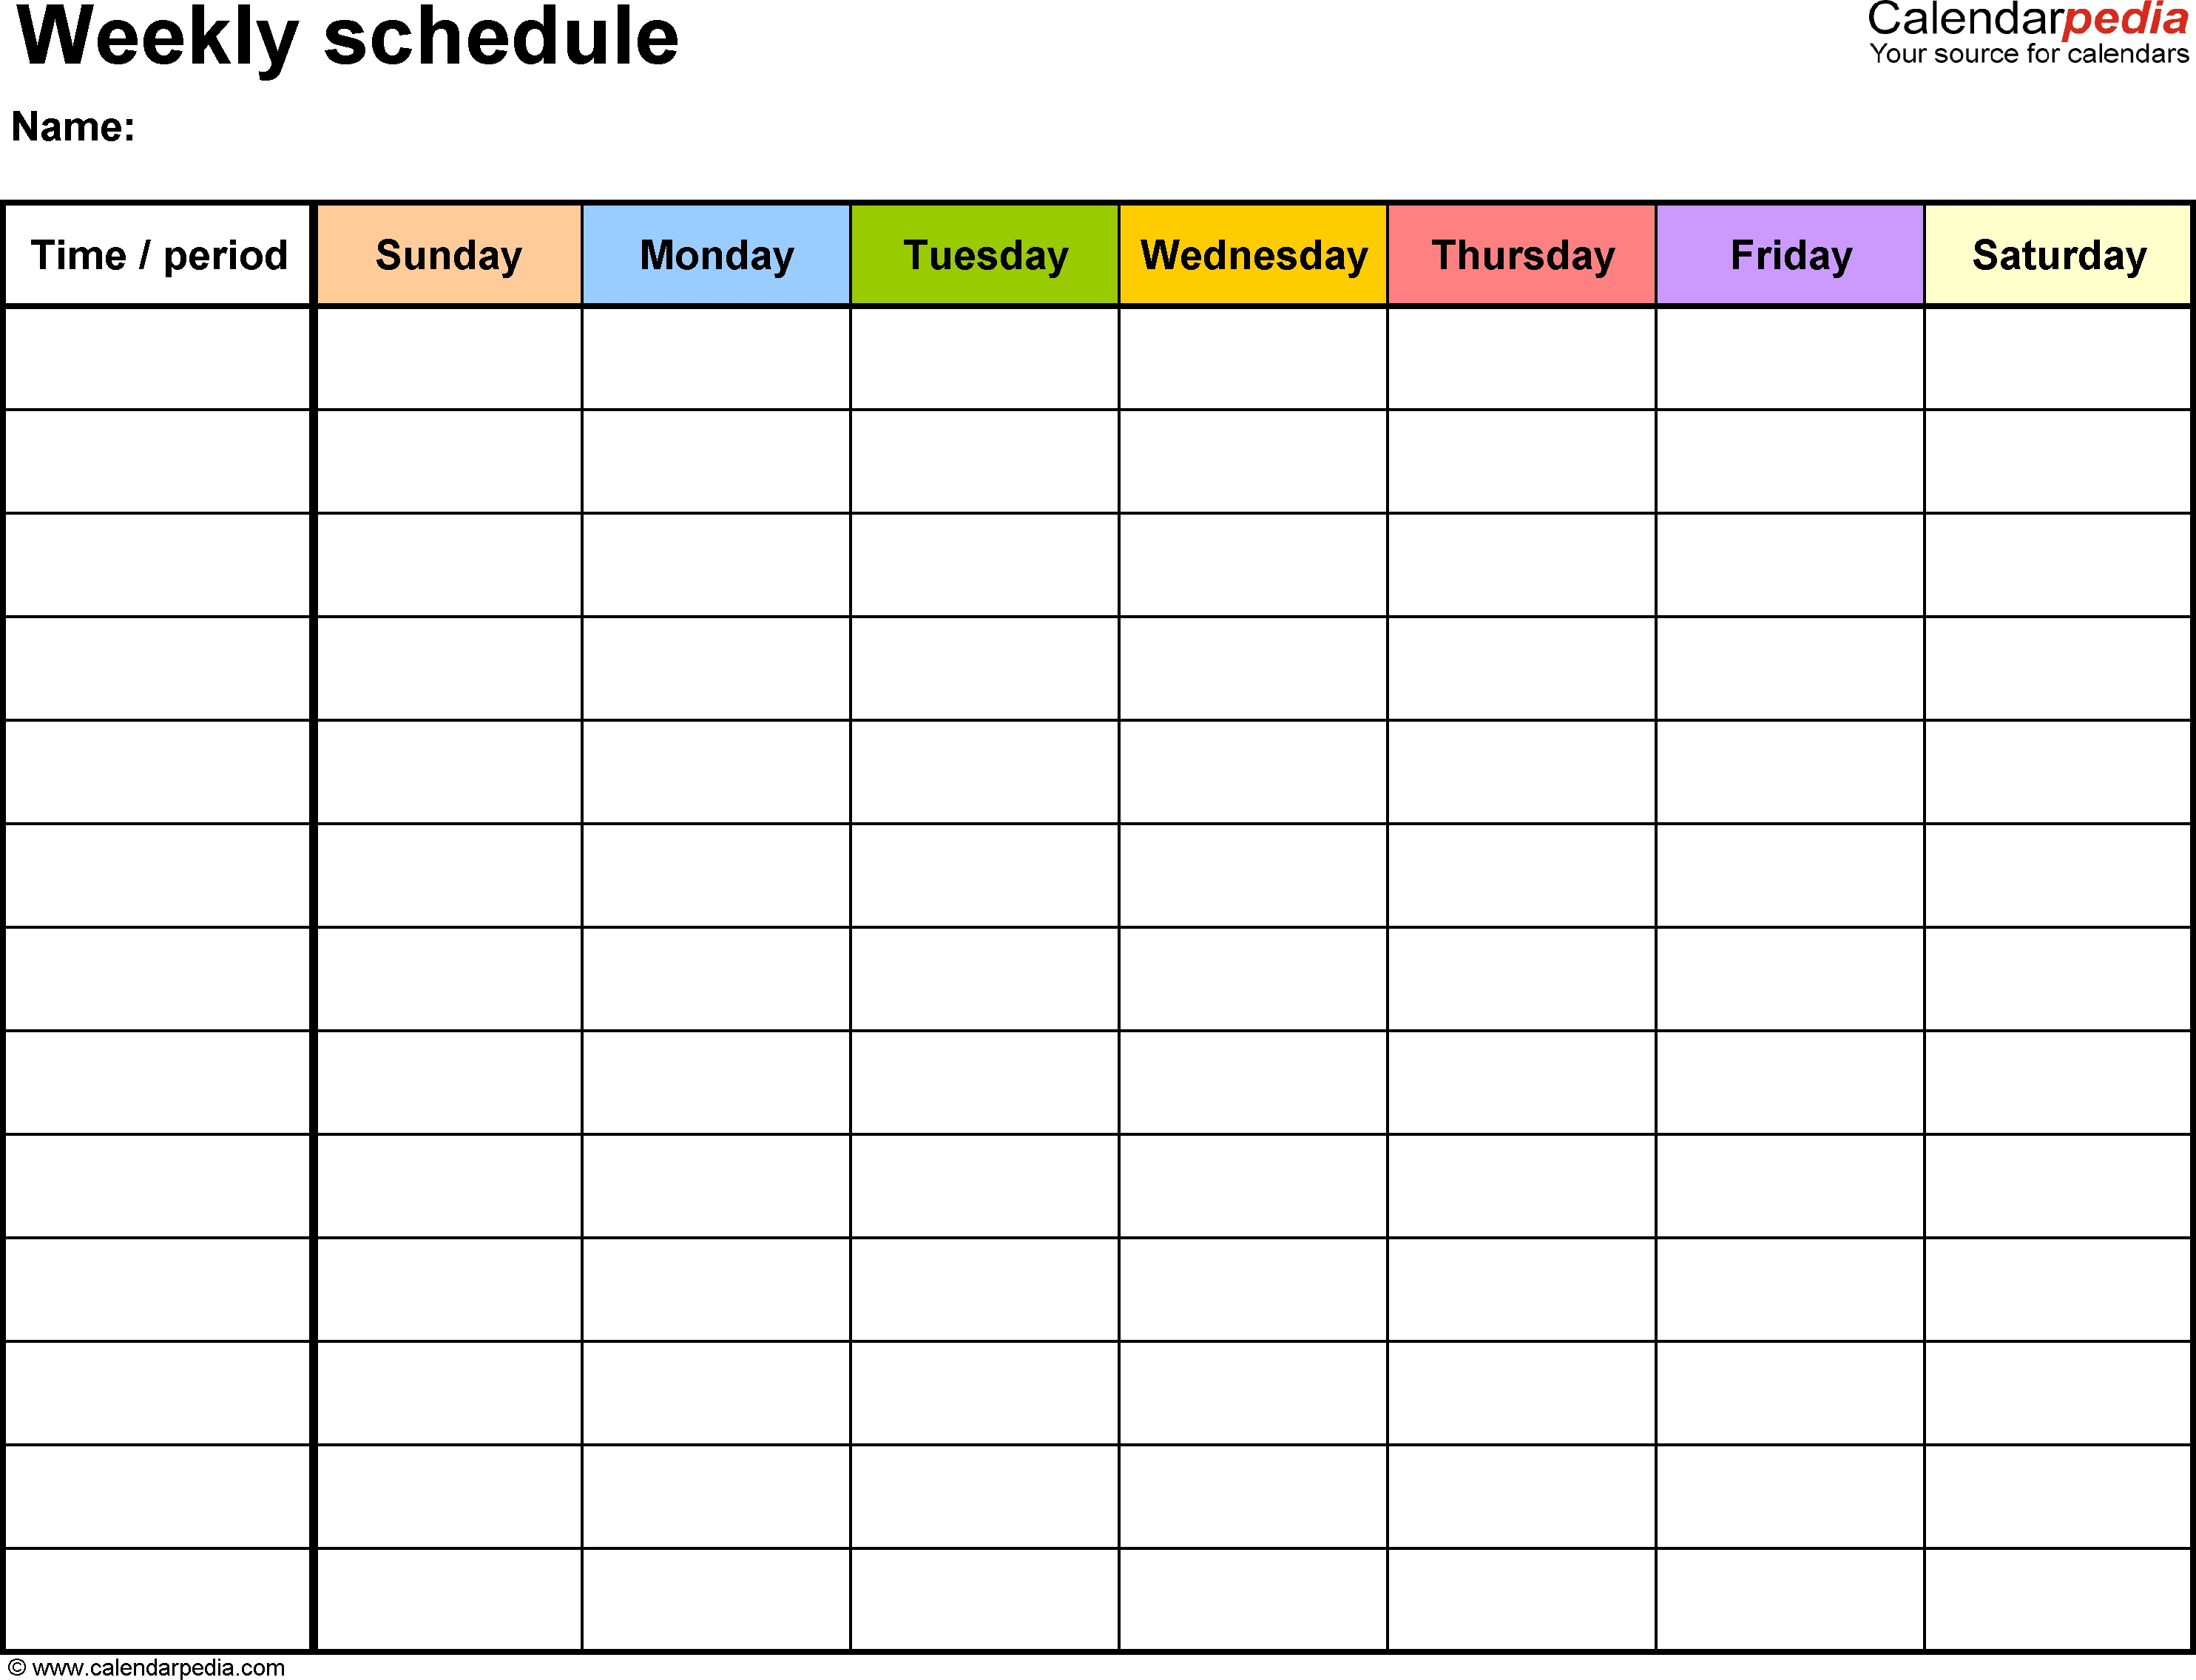 Free Weekly Schedule Templates For Word - 18 Templates with regard to Free Printable Calendar Monday Through Friday With Notes